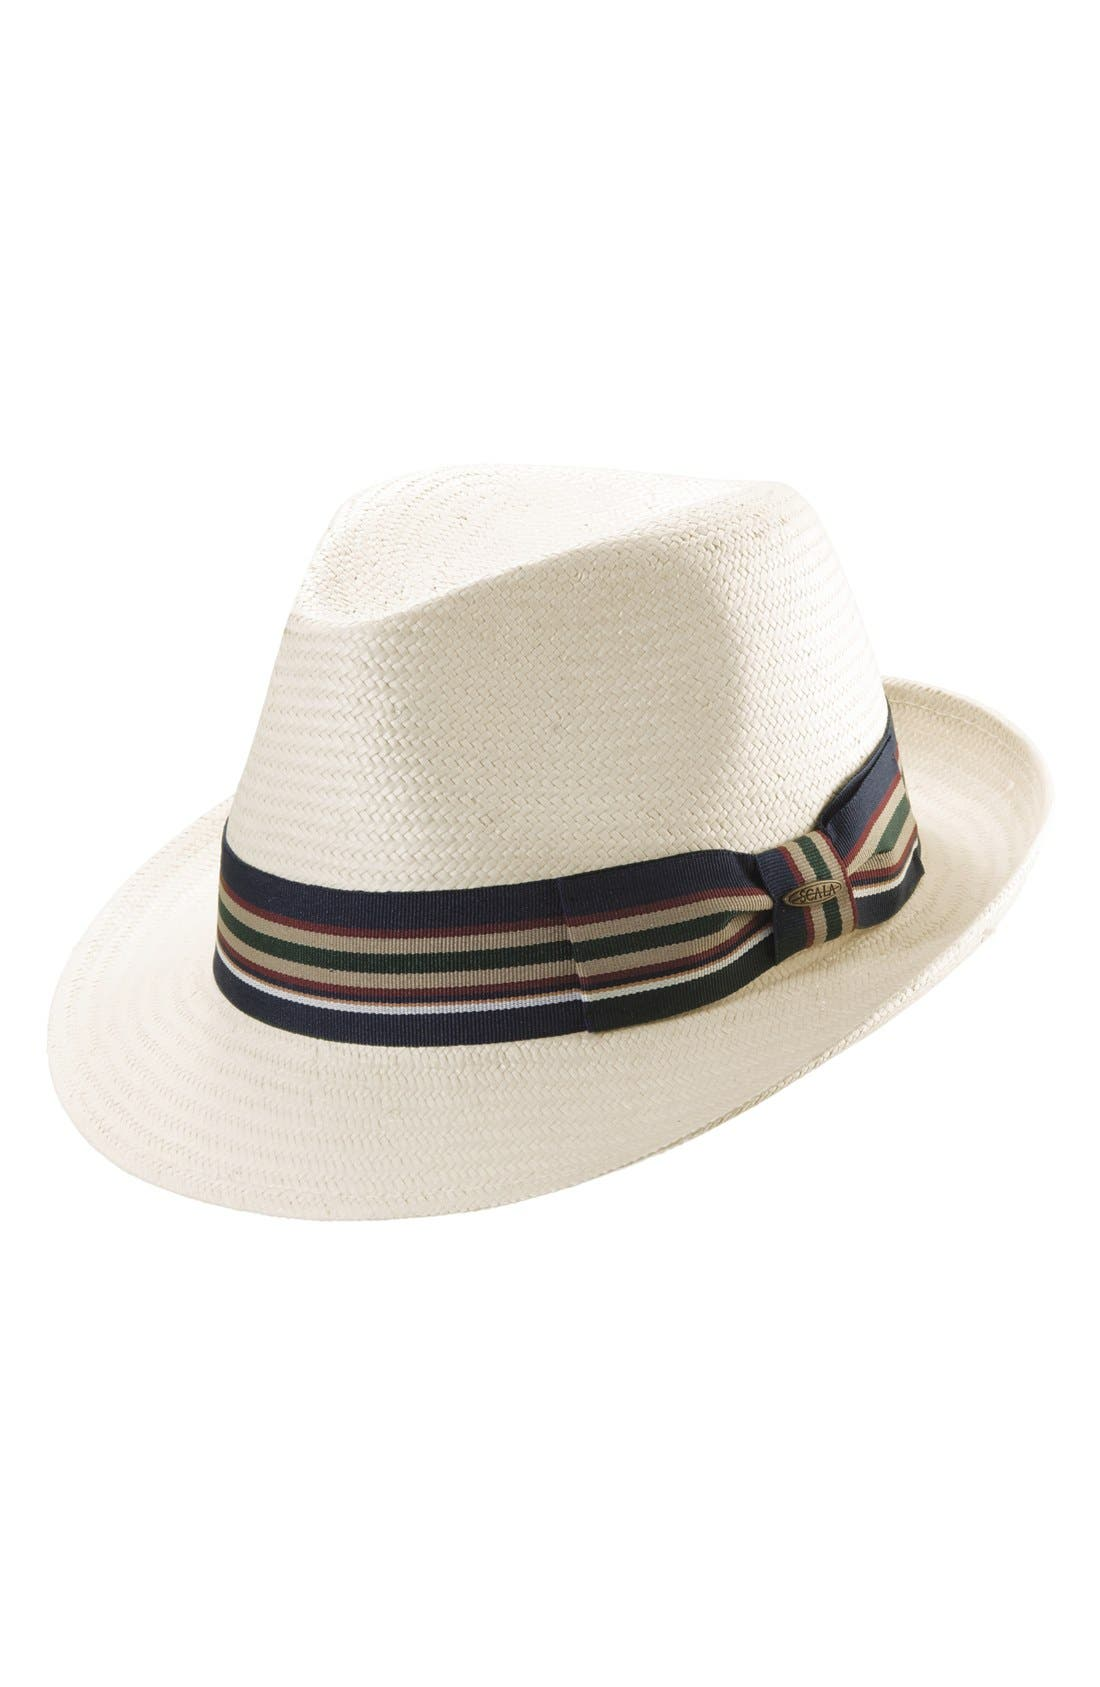 Straw Trilby,                         Main,                         color, Ivory